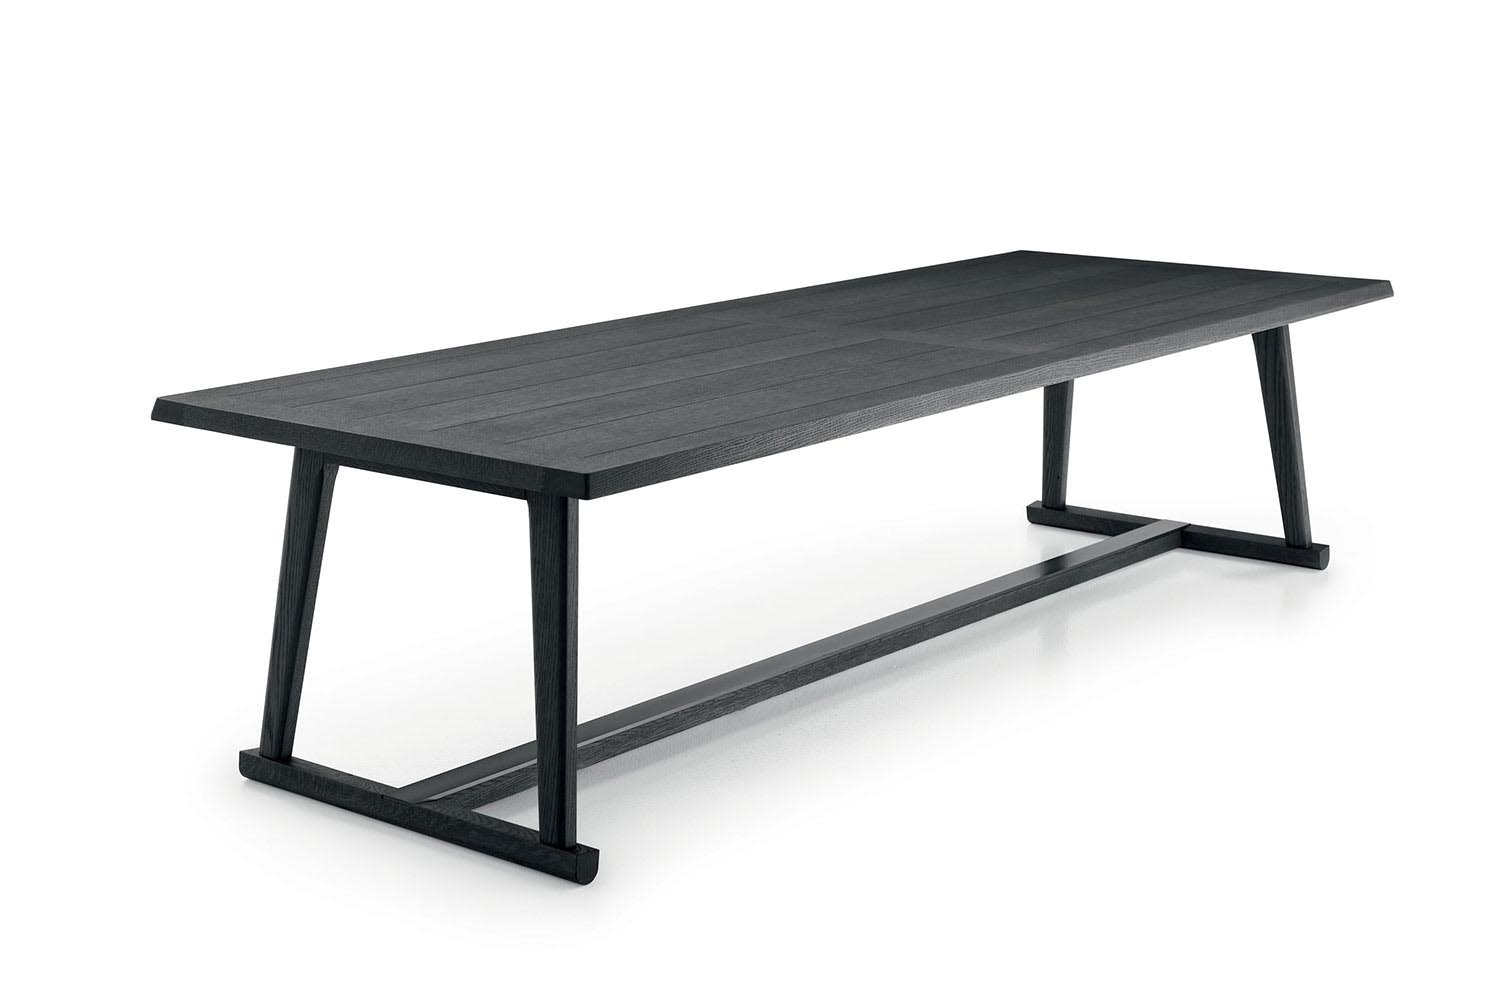 Recipio Table by Antonio Citterio for Maxalto